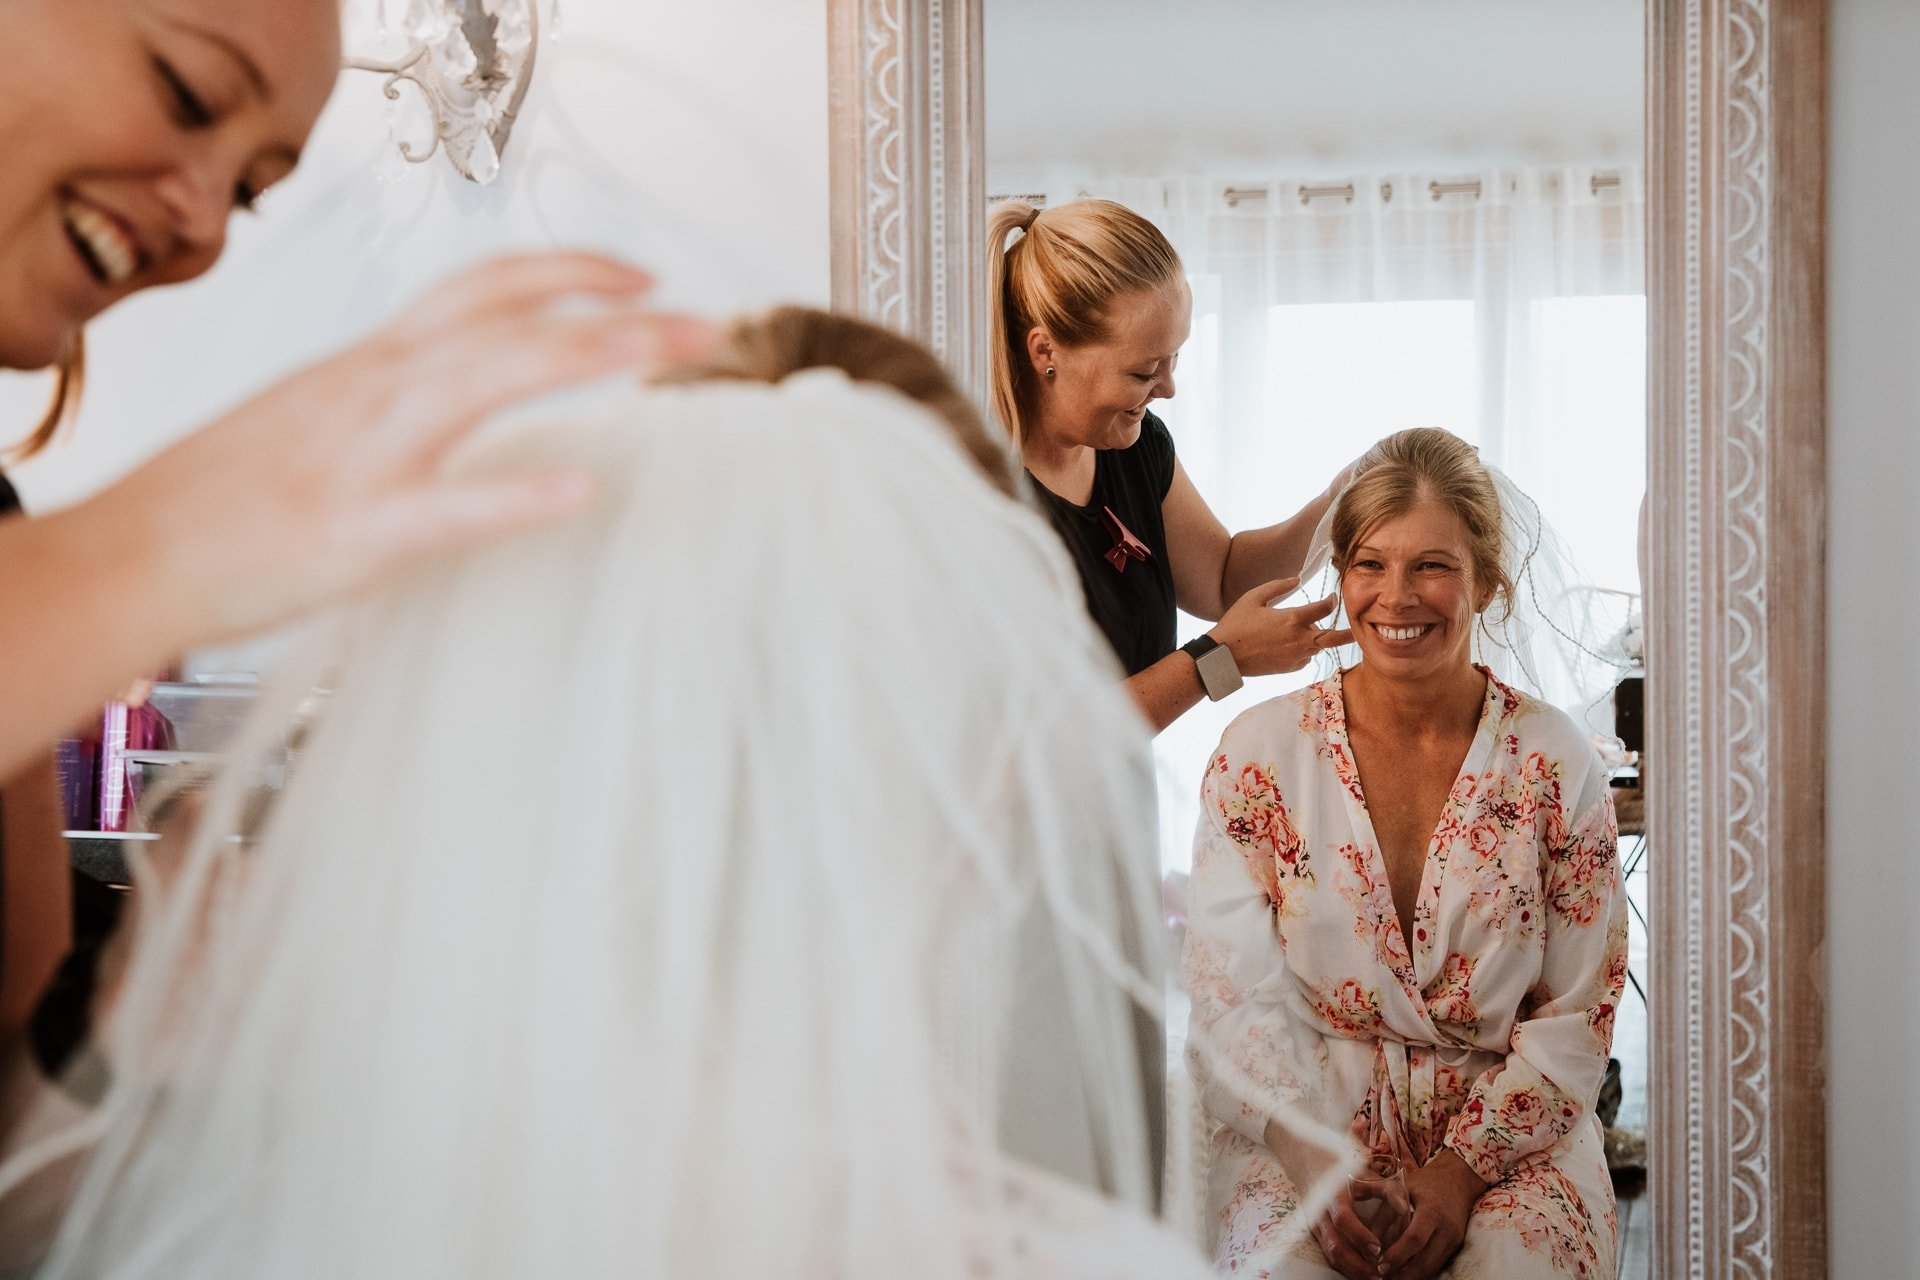 Smiling Bride looking in the mirror having her veil fitted before her wedding ceremony